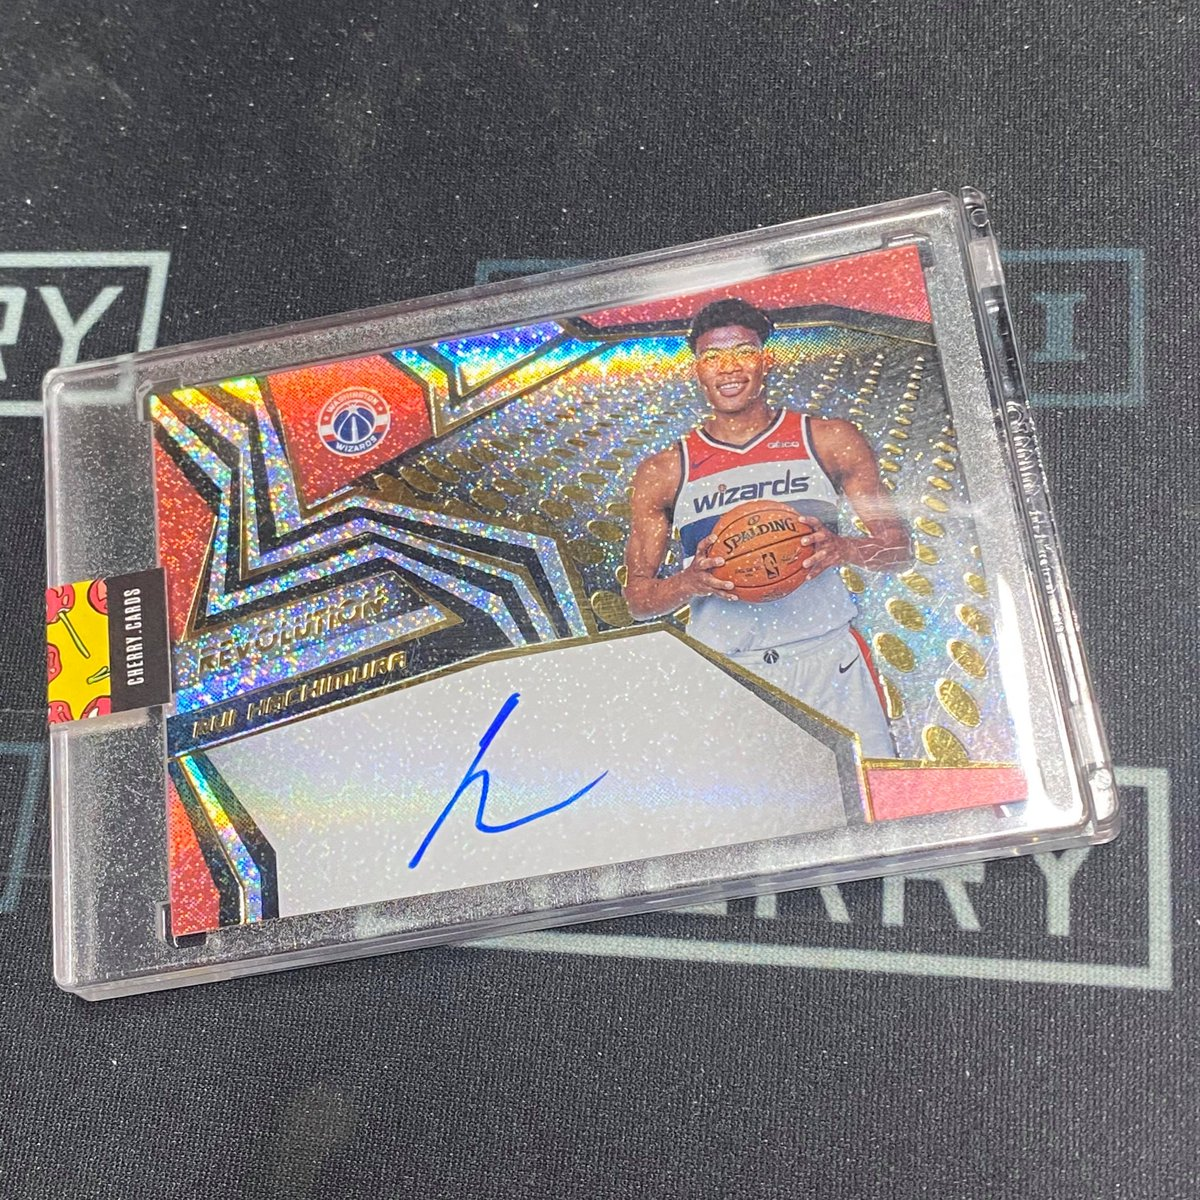 Case hit Rui! #sportscards #whodoyoucollect #thehobby #rookiecards #paniniamerica #groupbreaks #sportsmemorabilia #autograph #casebreaks #basketballcards  #showyourhits #hobbystore #cherrycards #ruihachimura #washingtonwizards #admiralschofield #wizardsnationpic.twitter.com/HrfFXw45ys